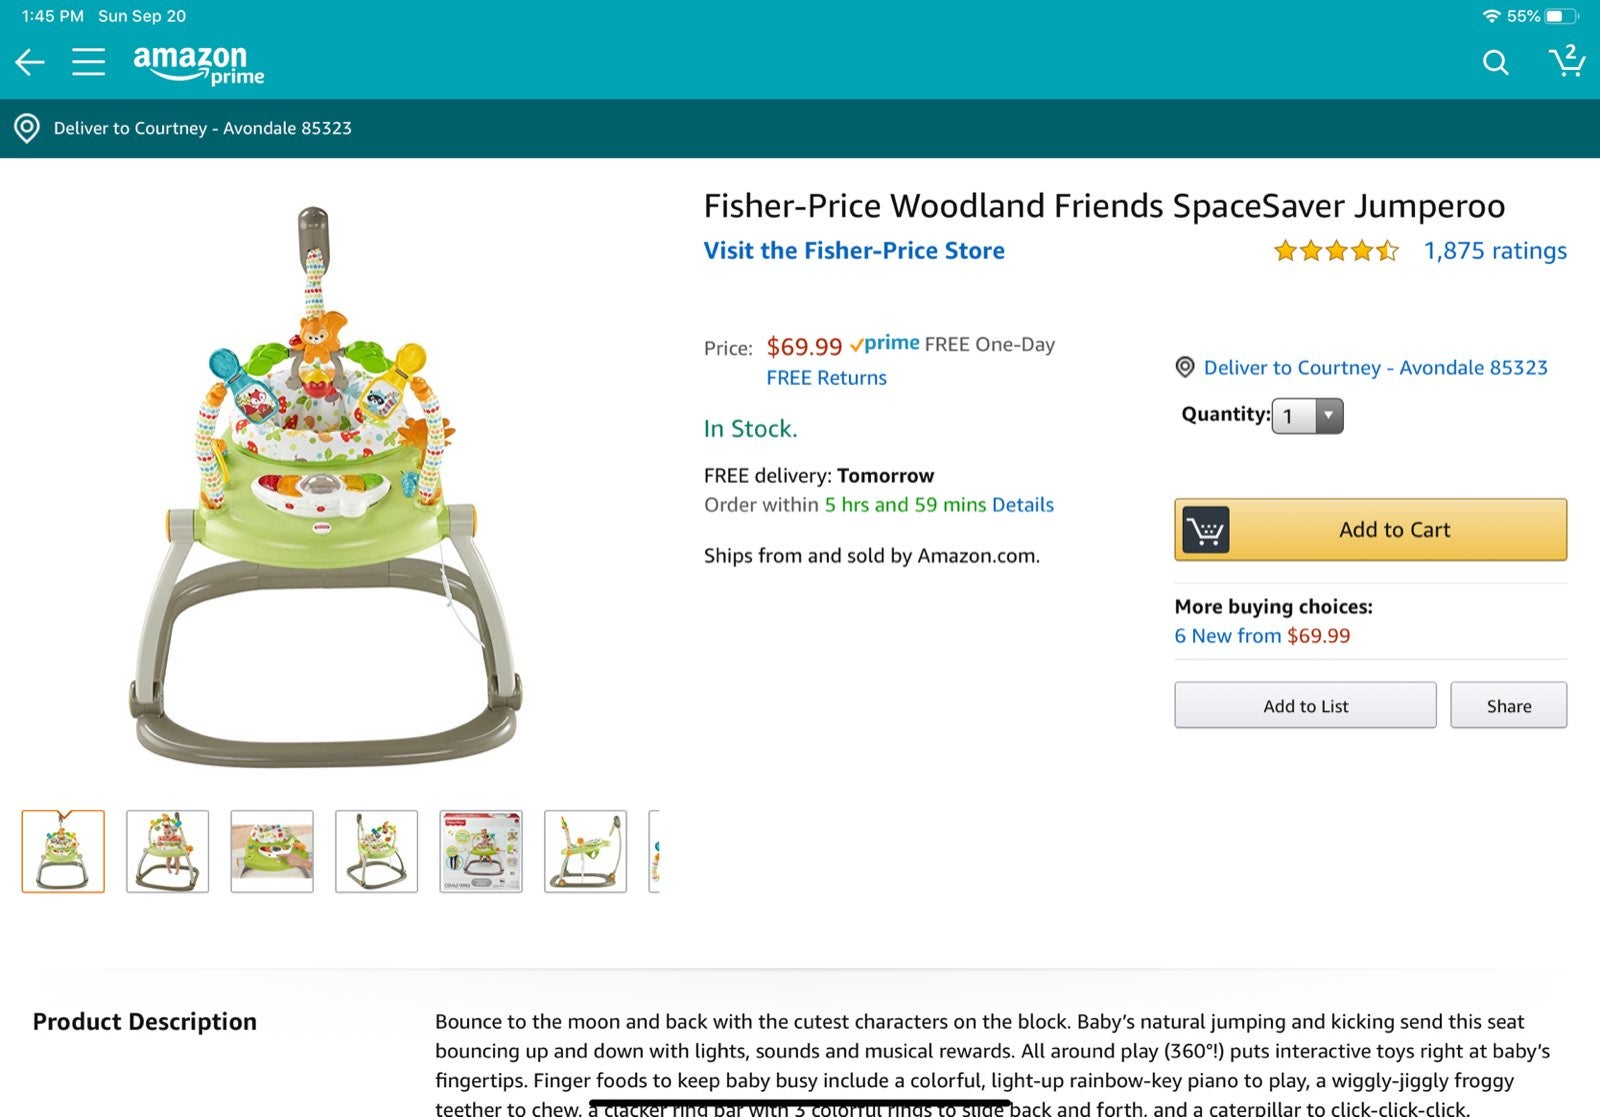 Fisher-Price Woodland Friends SpaceSaver